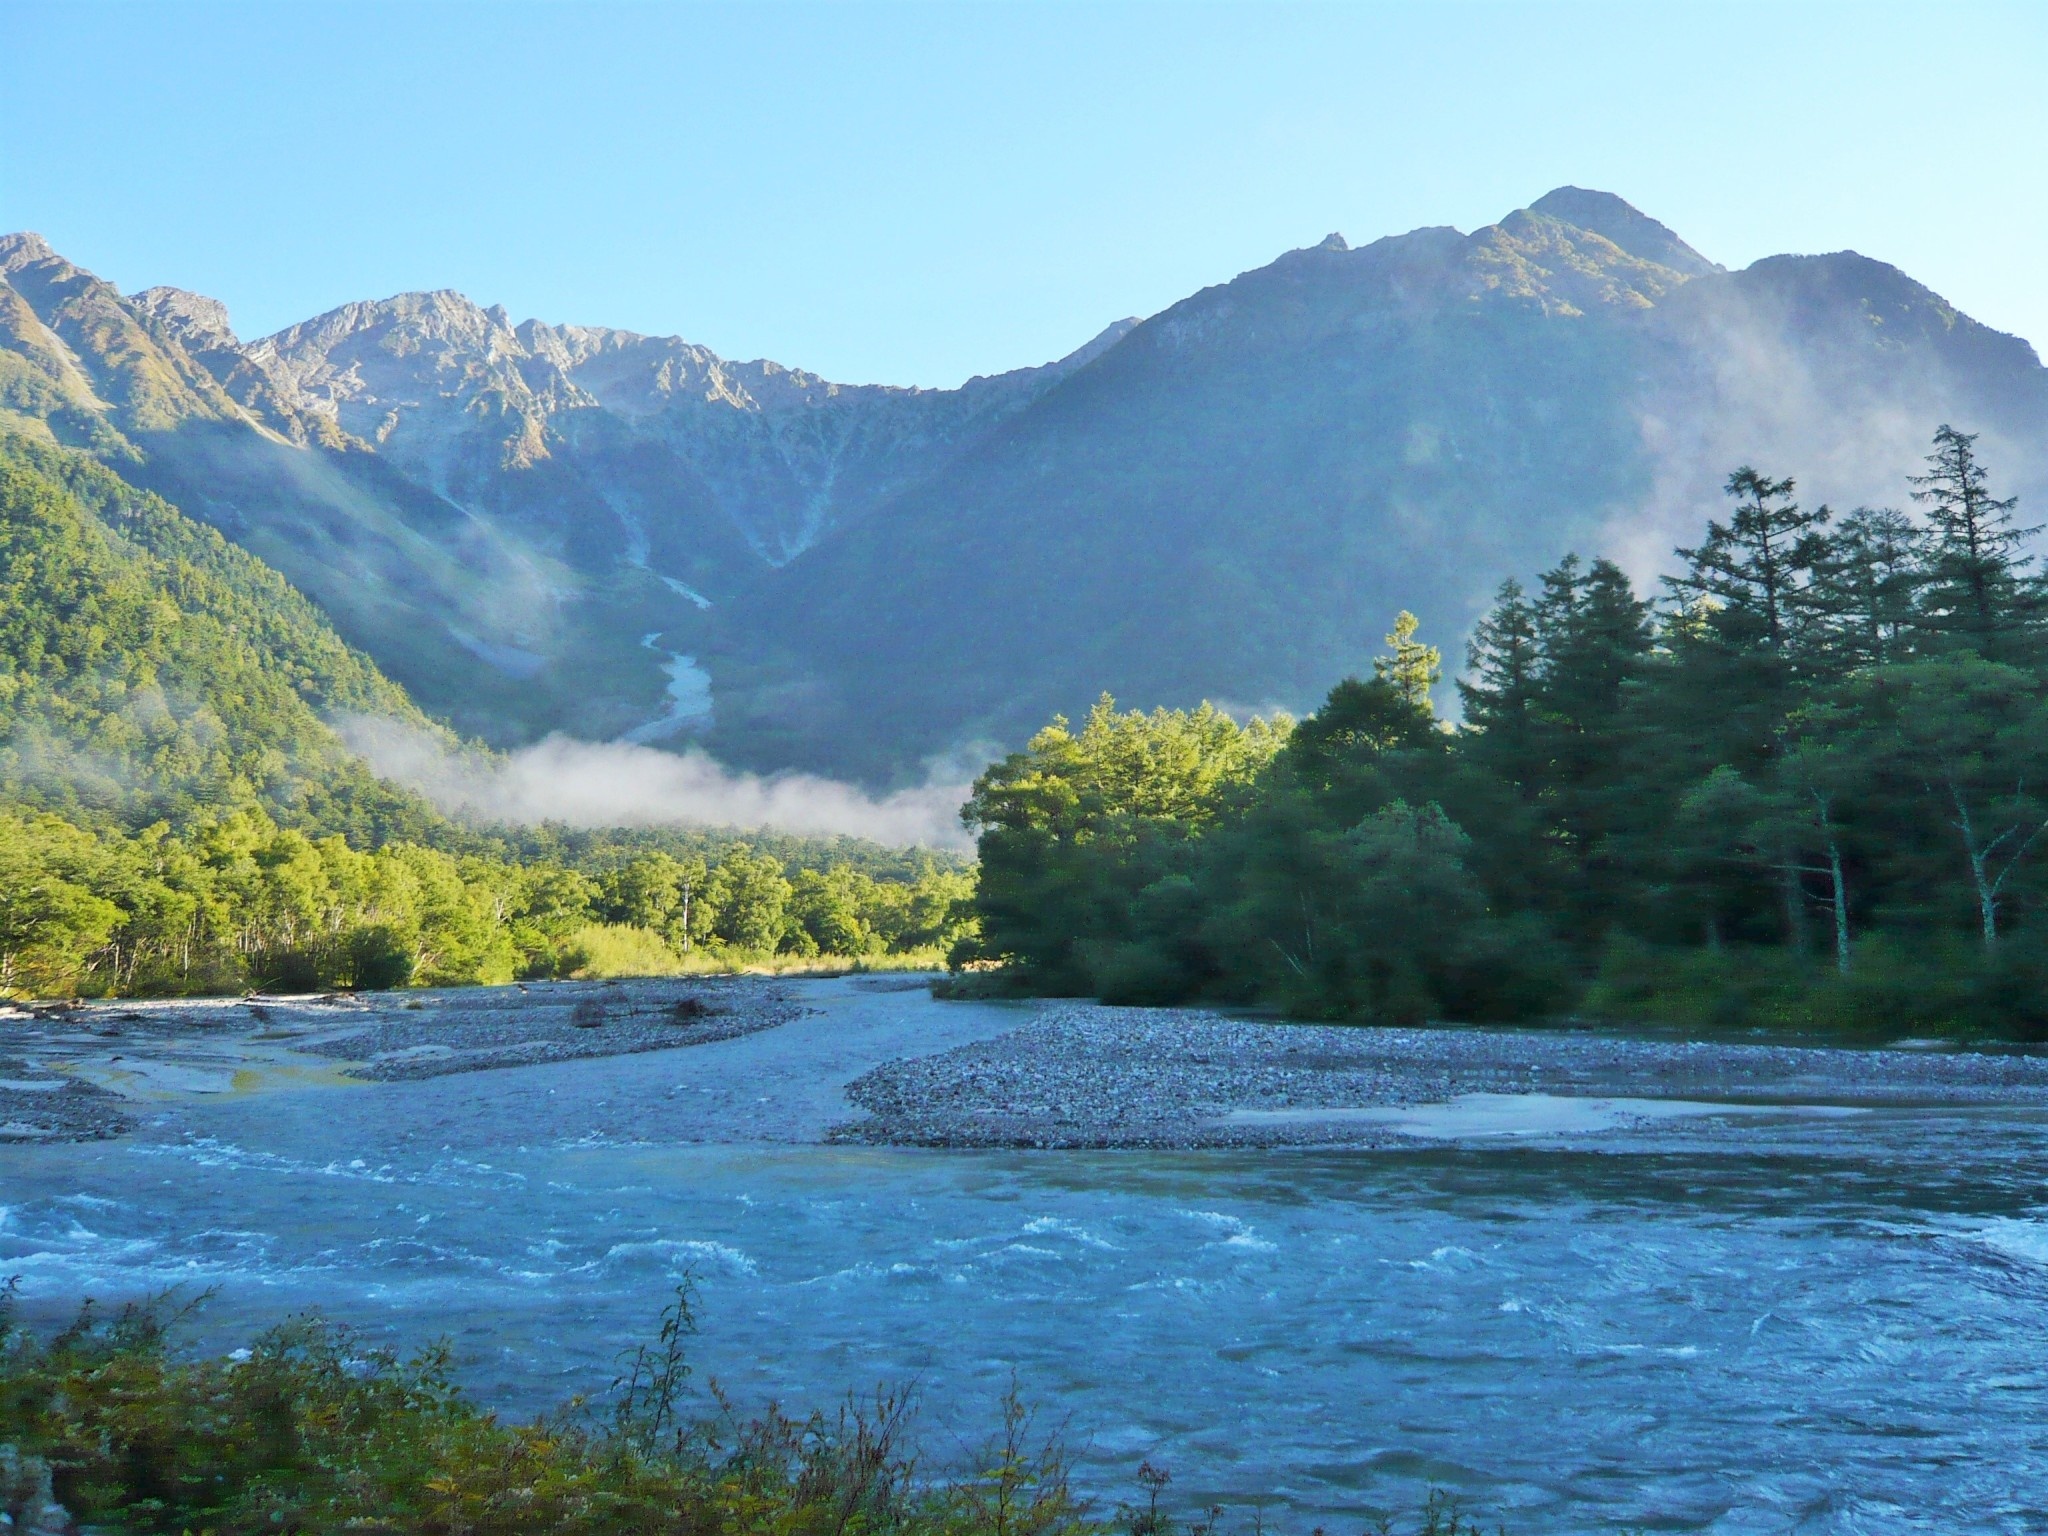 The Asuza River, Dakesawa trail, and mountains of the Japan Alps in the early morning light.